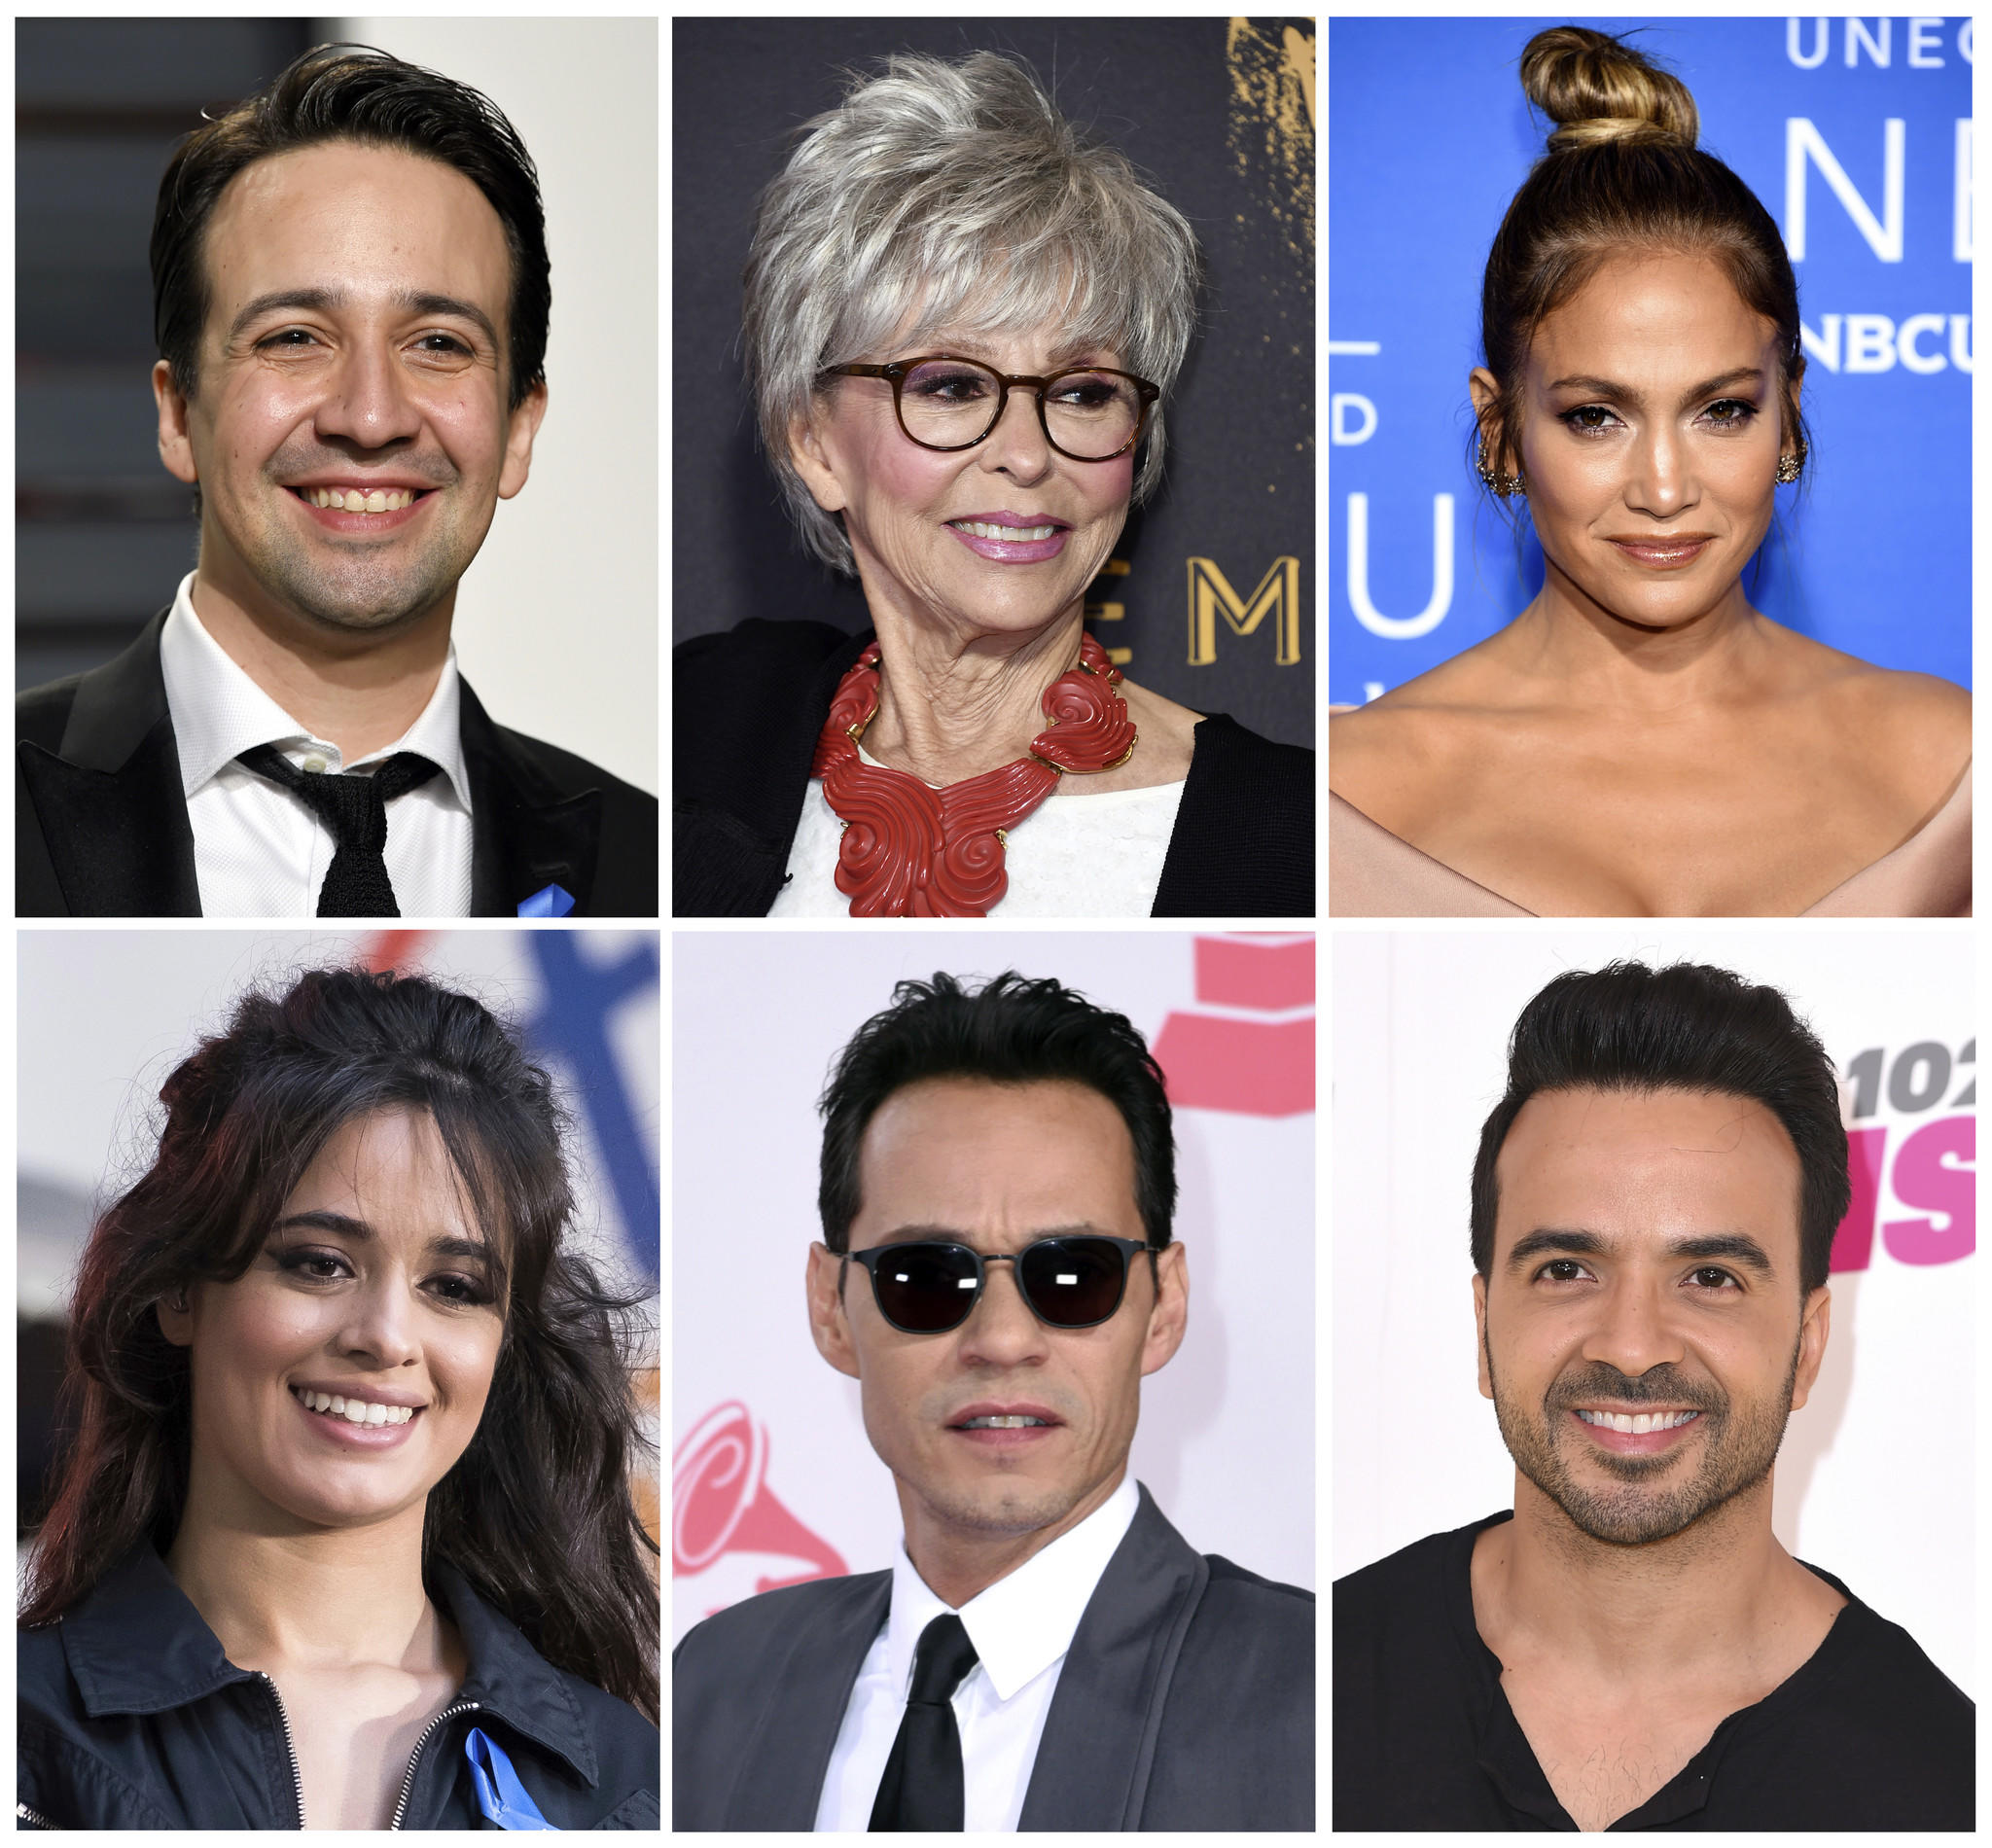 Lin-Manuel Miranda, top row from left, Rita Moreno, Jennifer Lopez, and bottom row from left, Camilla Cabello, Marc Anthony and Luis Fonsi. (Associated Press)